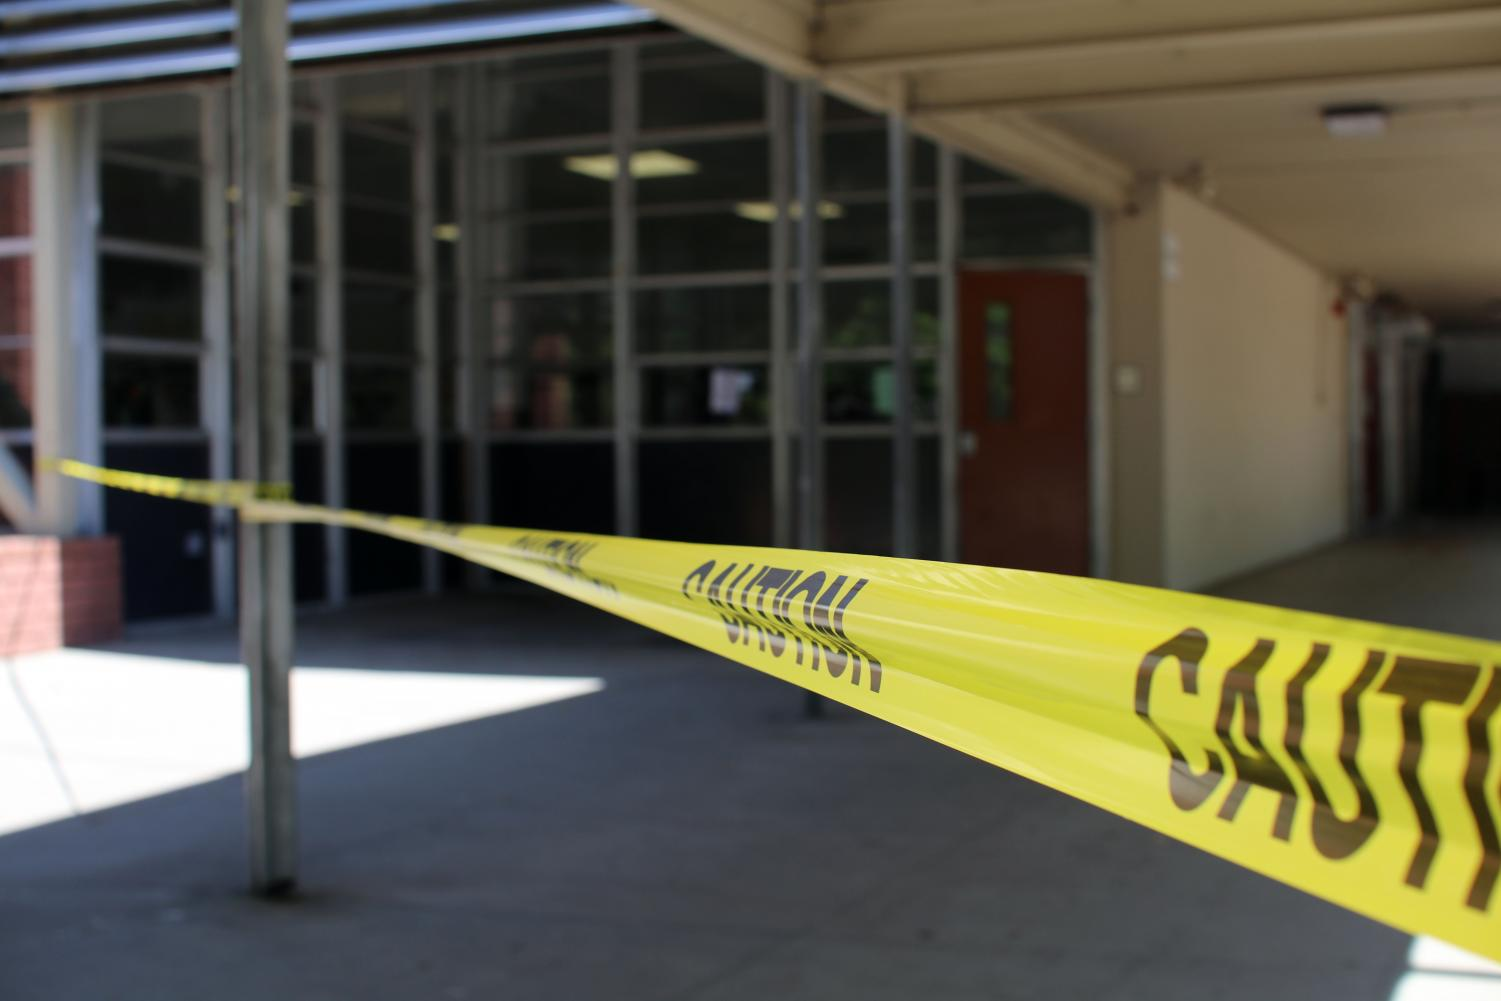 Caution+tape+to+keep+students+from+entering+the+now+renovating+cafeteria.